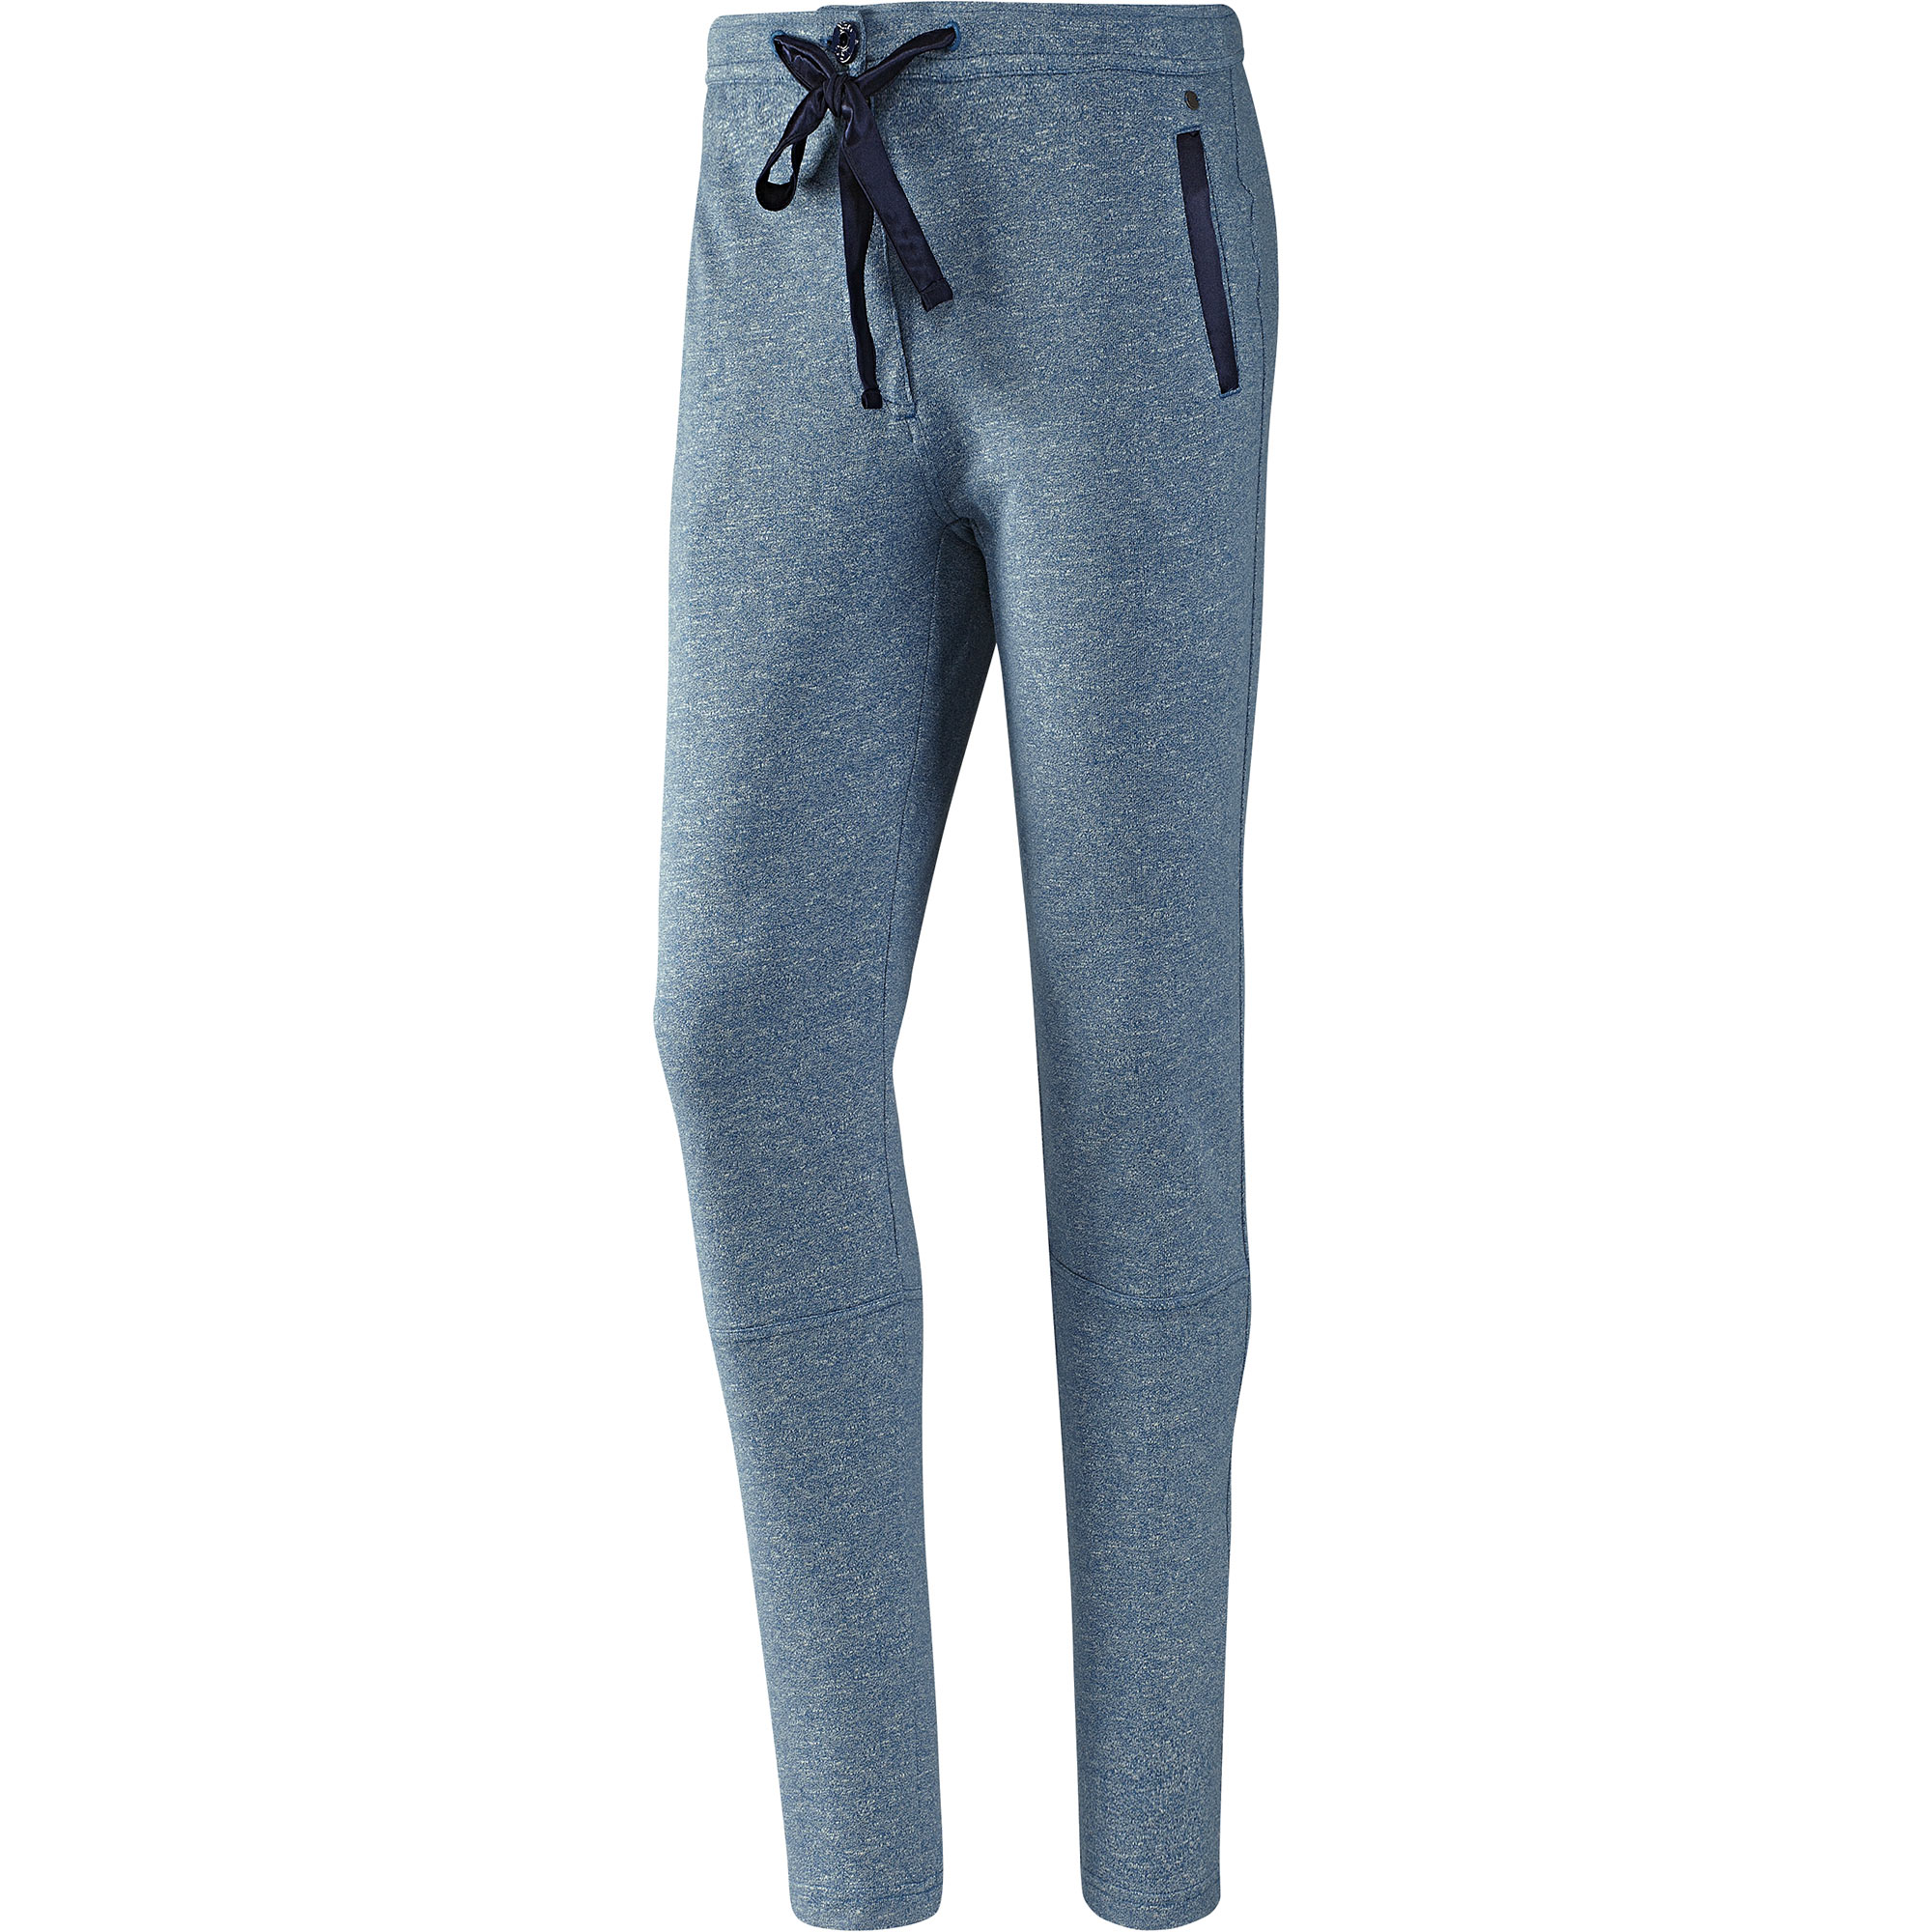 Femmes Pantalon de survêtement Fashion adidas | adidas France